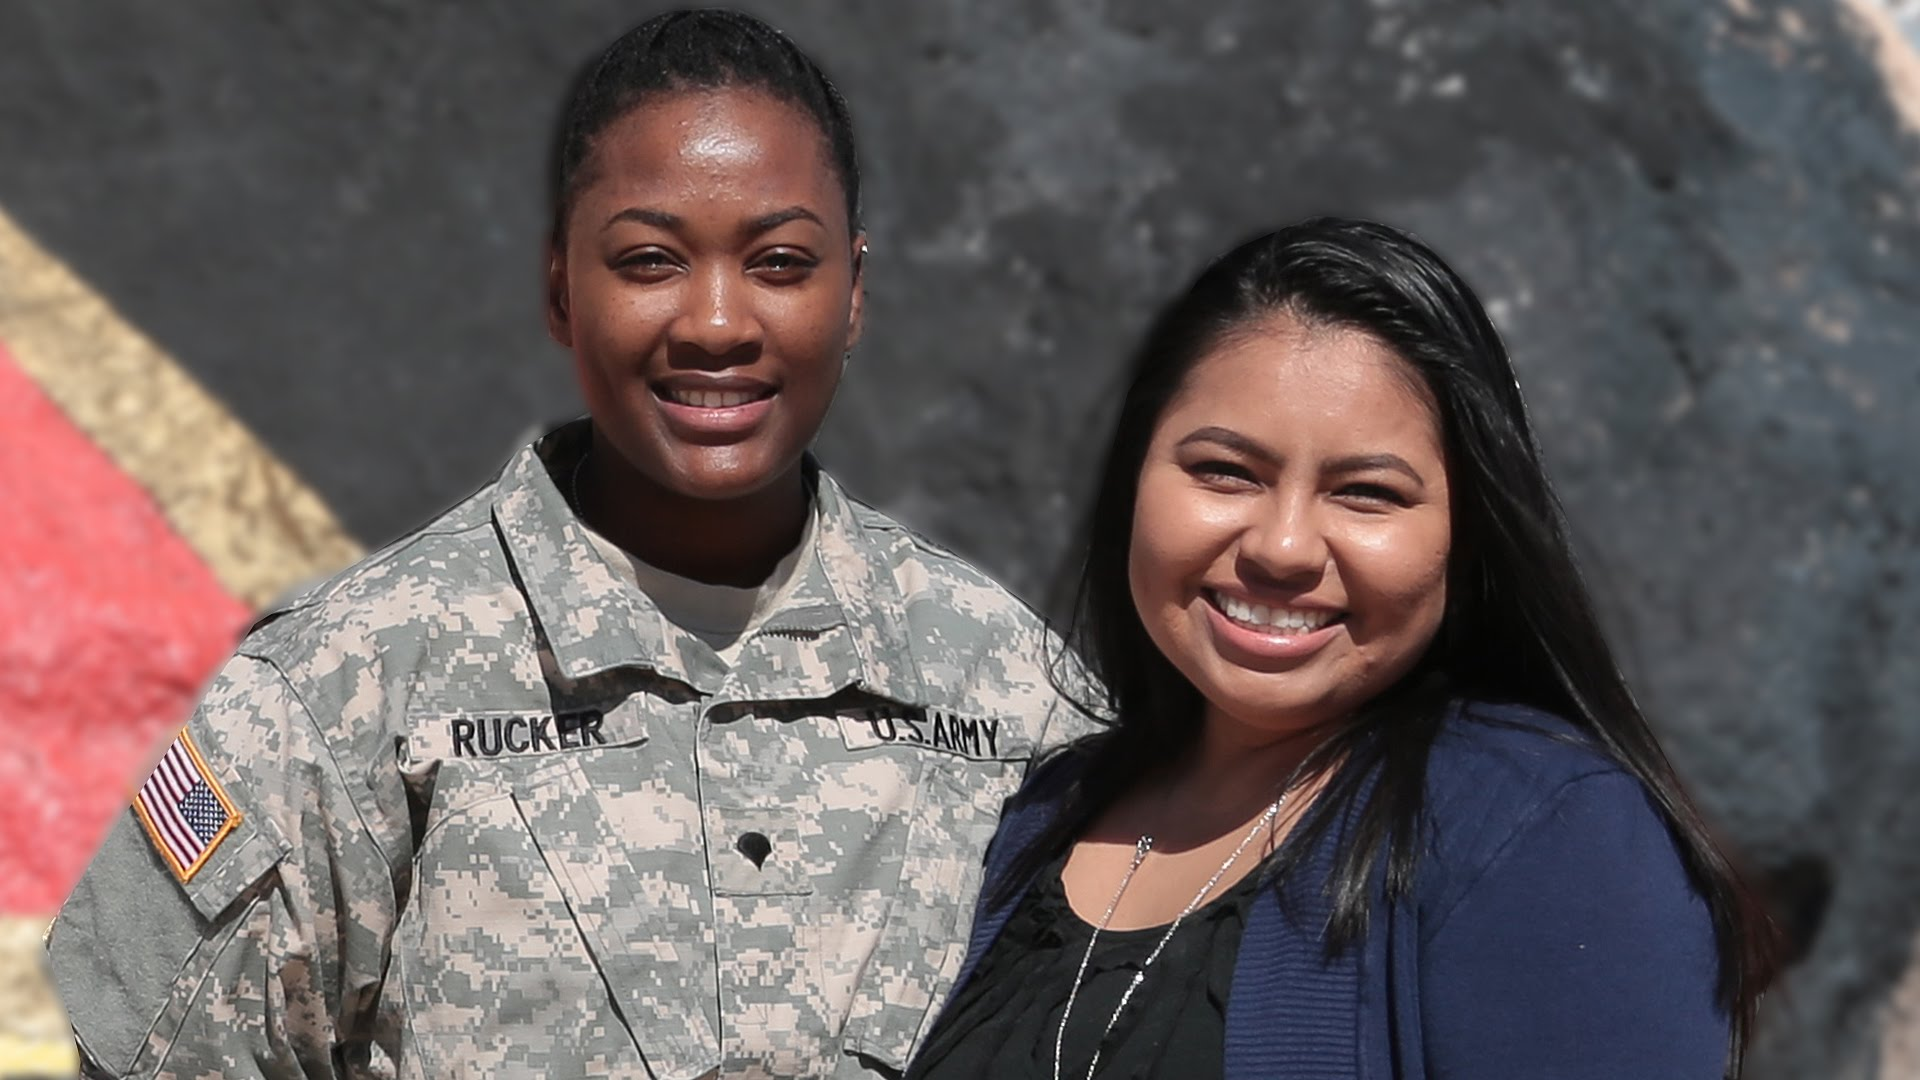 Lesbian us army having sex, i put a hole in a nigger for fucking with